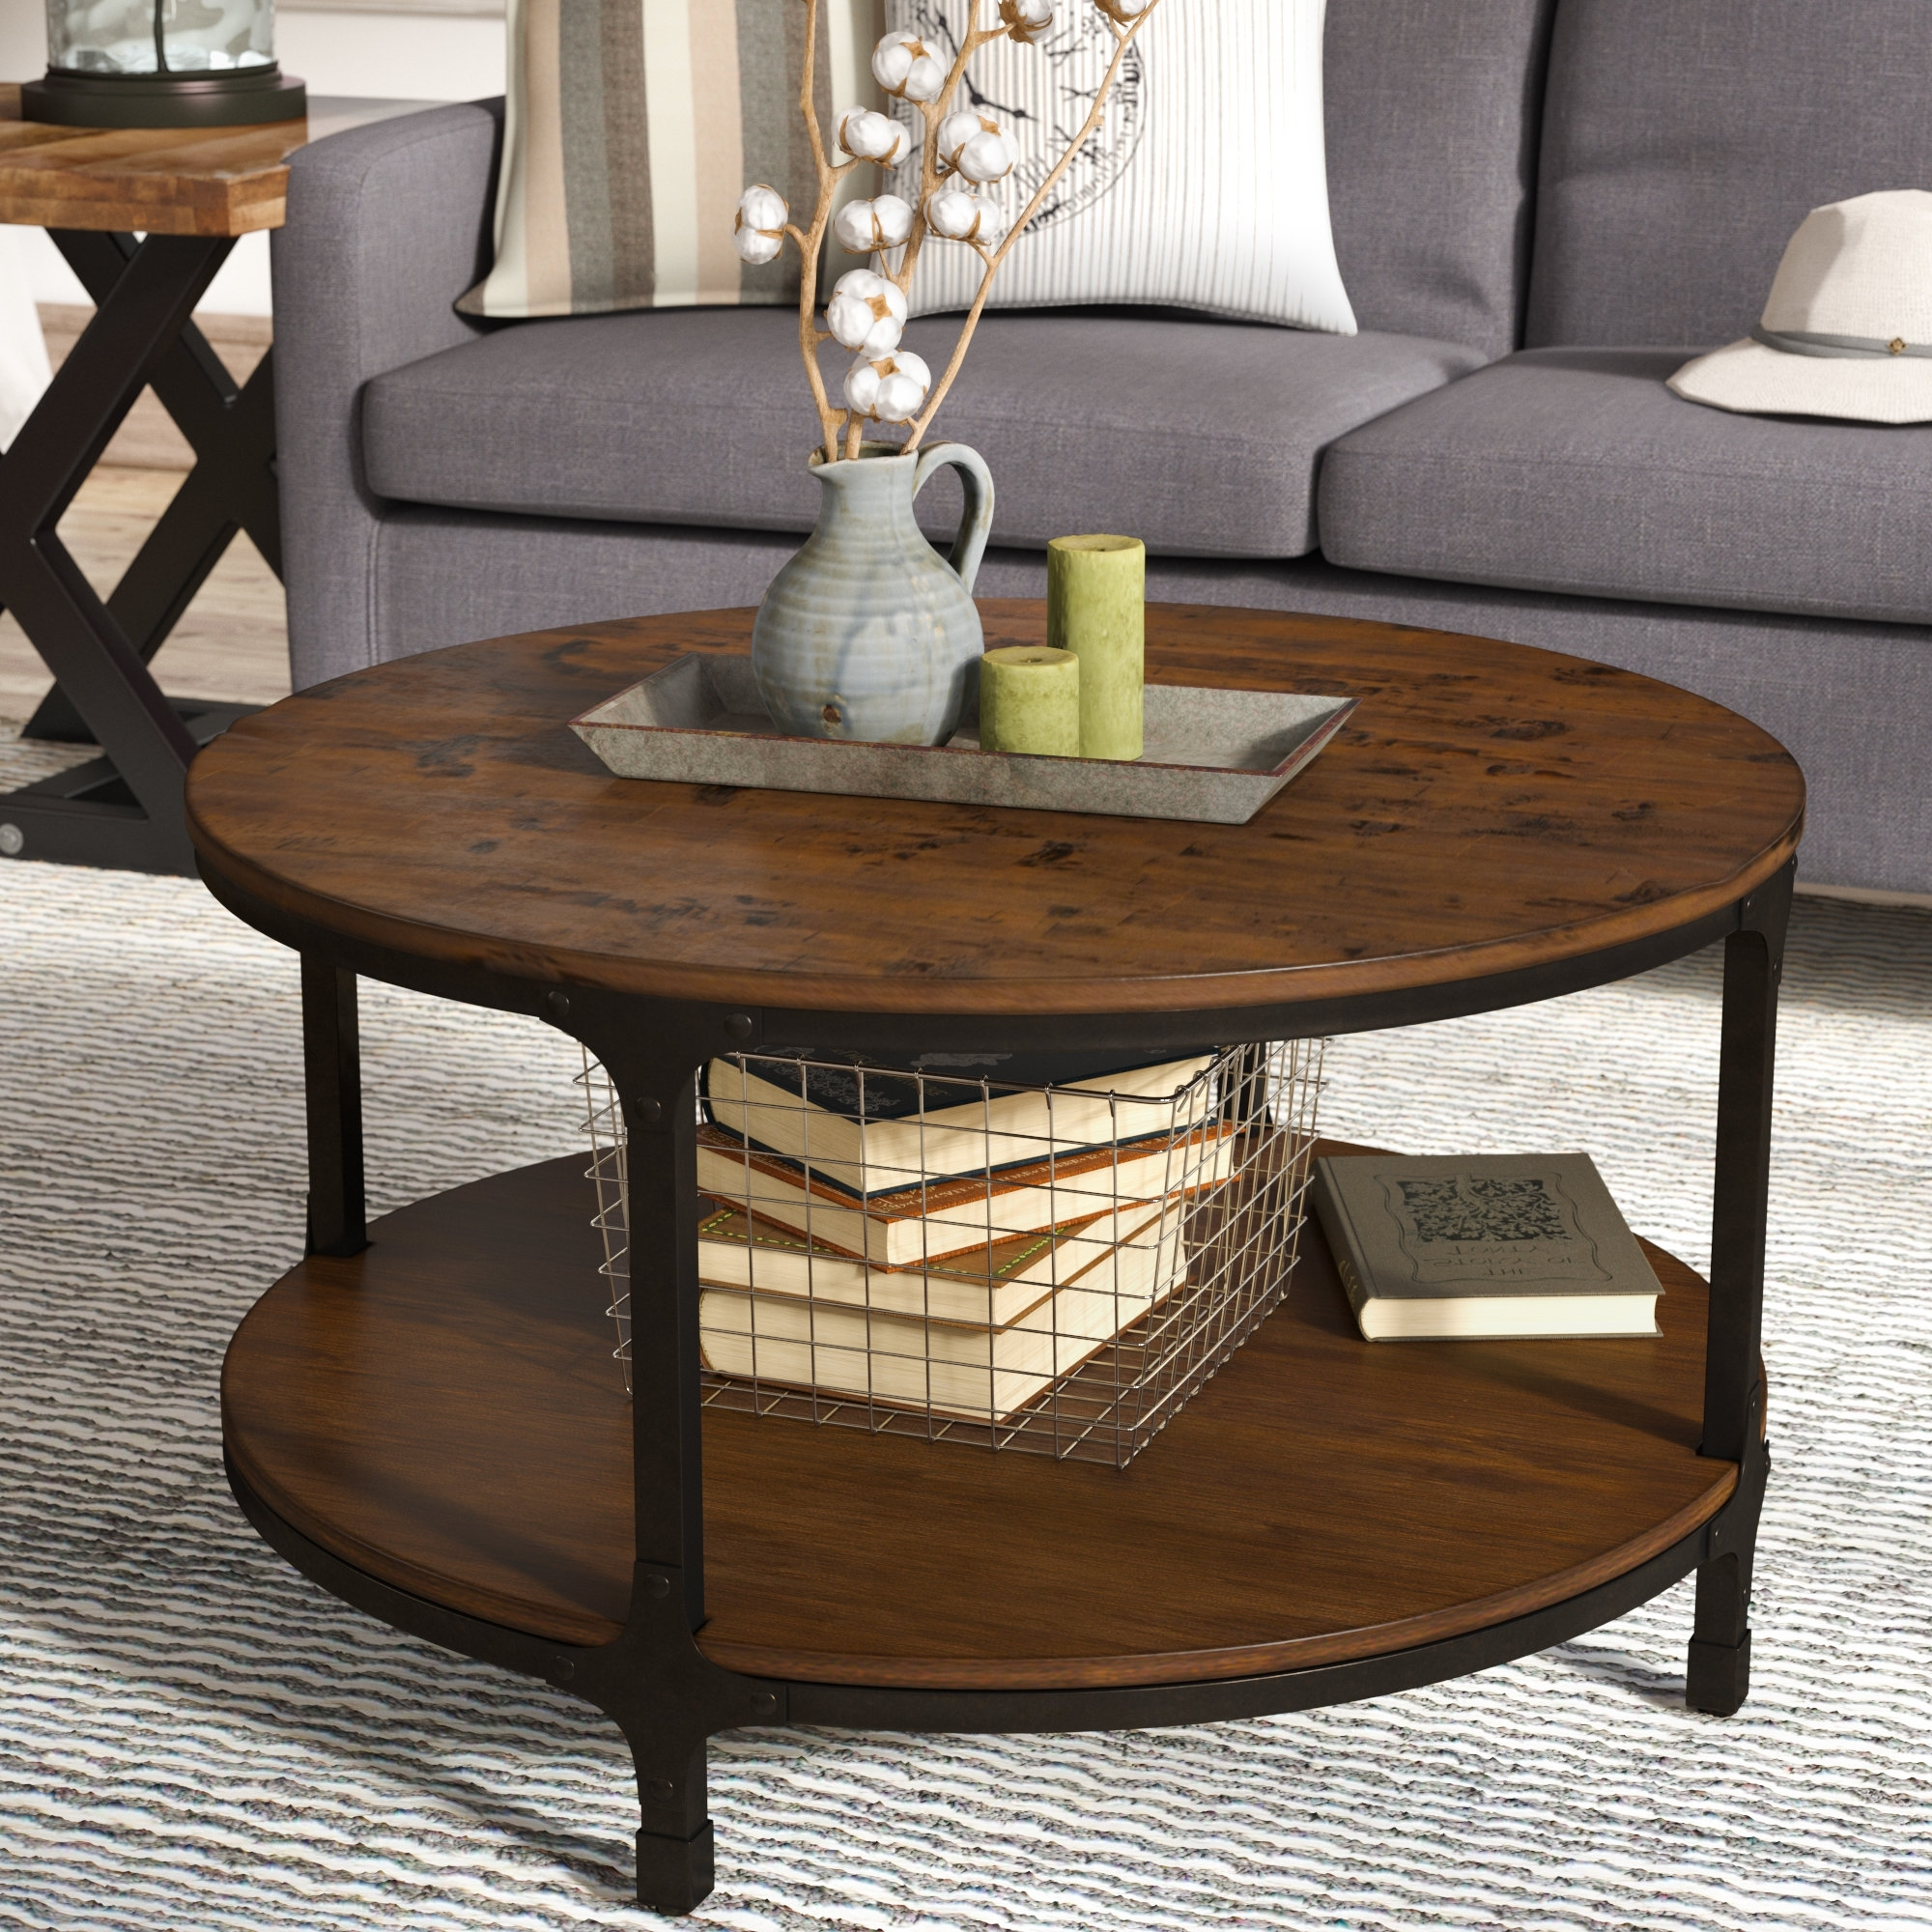 Round Coffee Tables You'll Love (View 17 of 20)